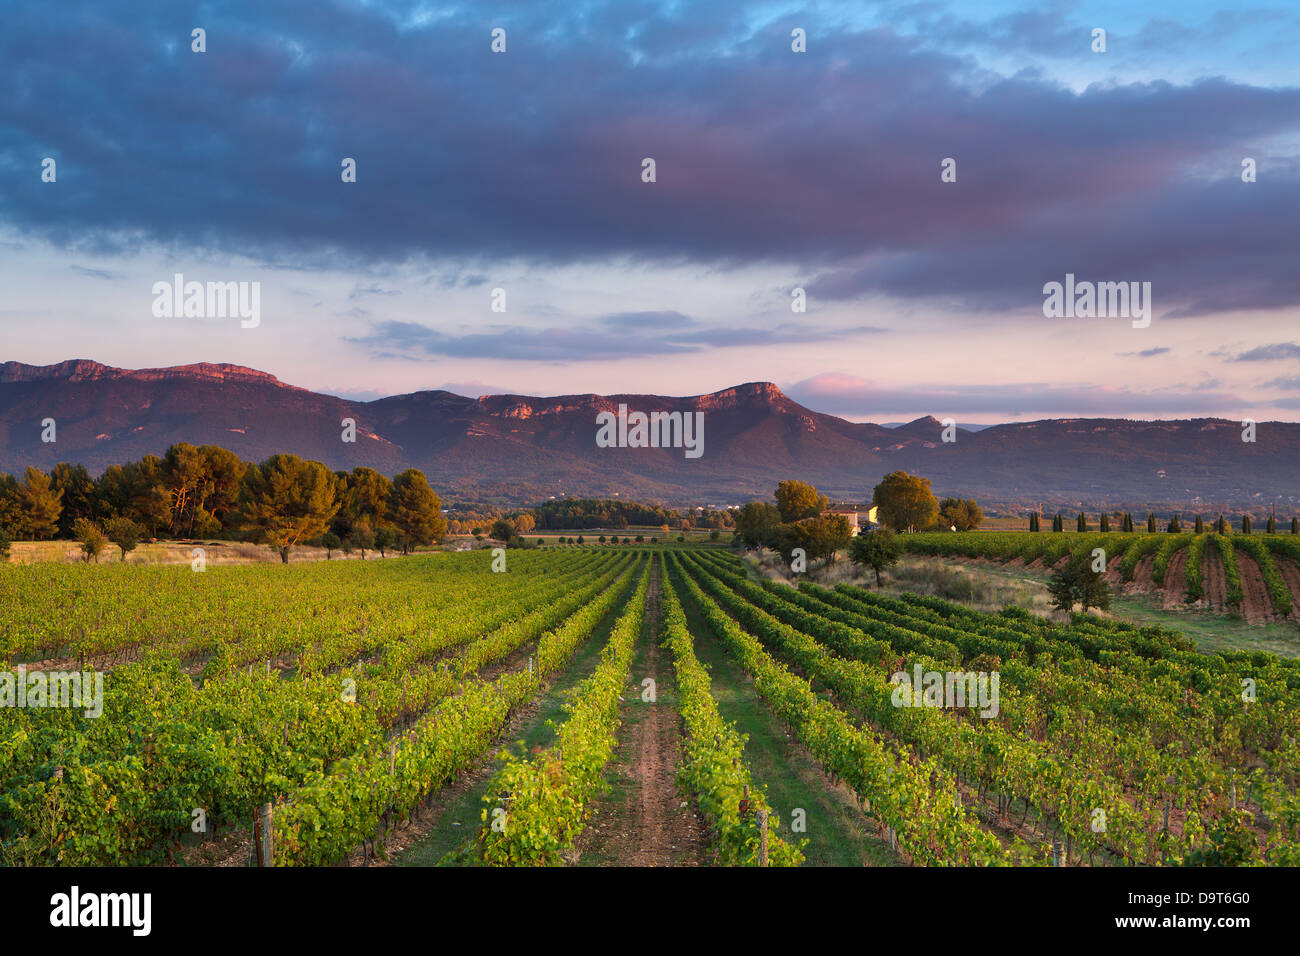 a vineyard nr Puyloubier with the Massif de la Ste Baume at dusk, Var, Provence, France - Stock Image